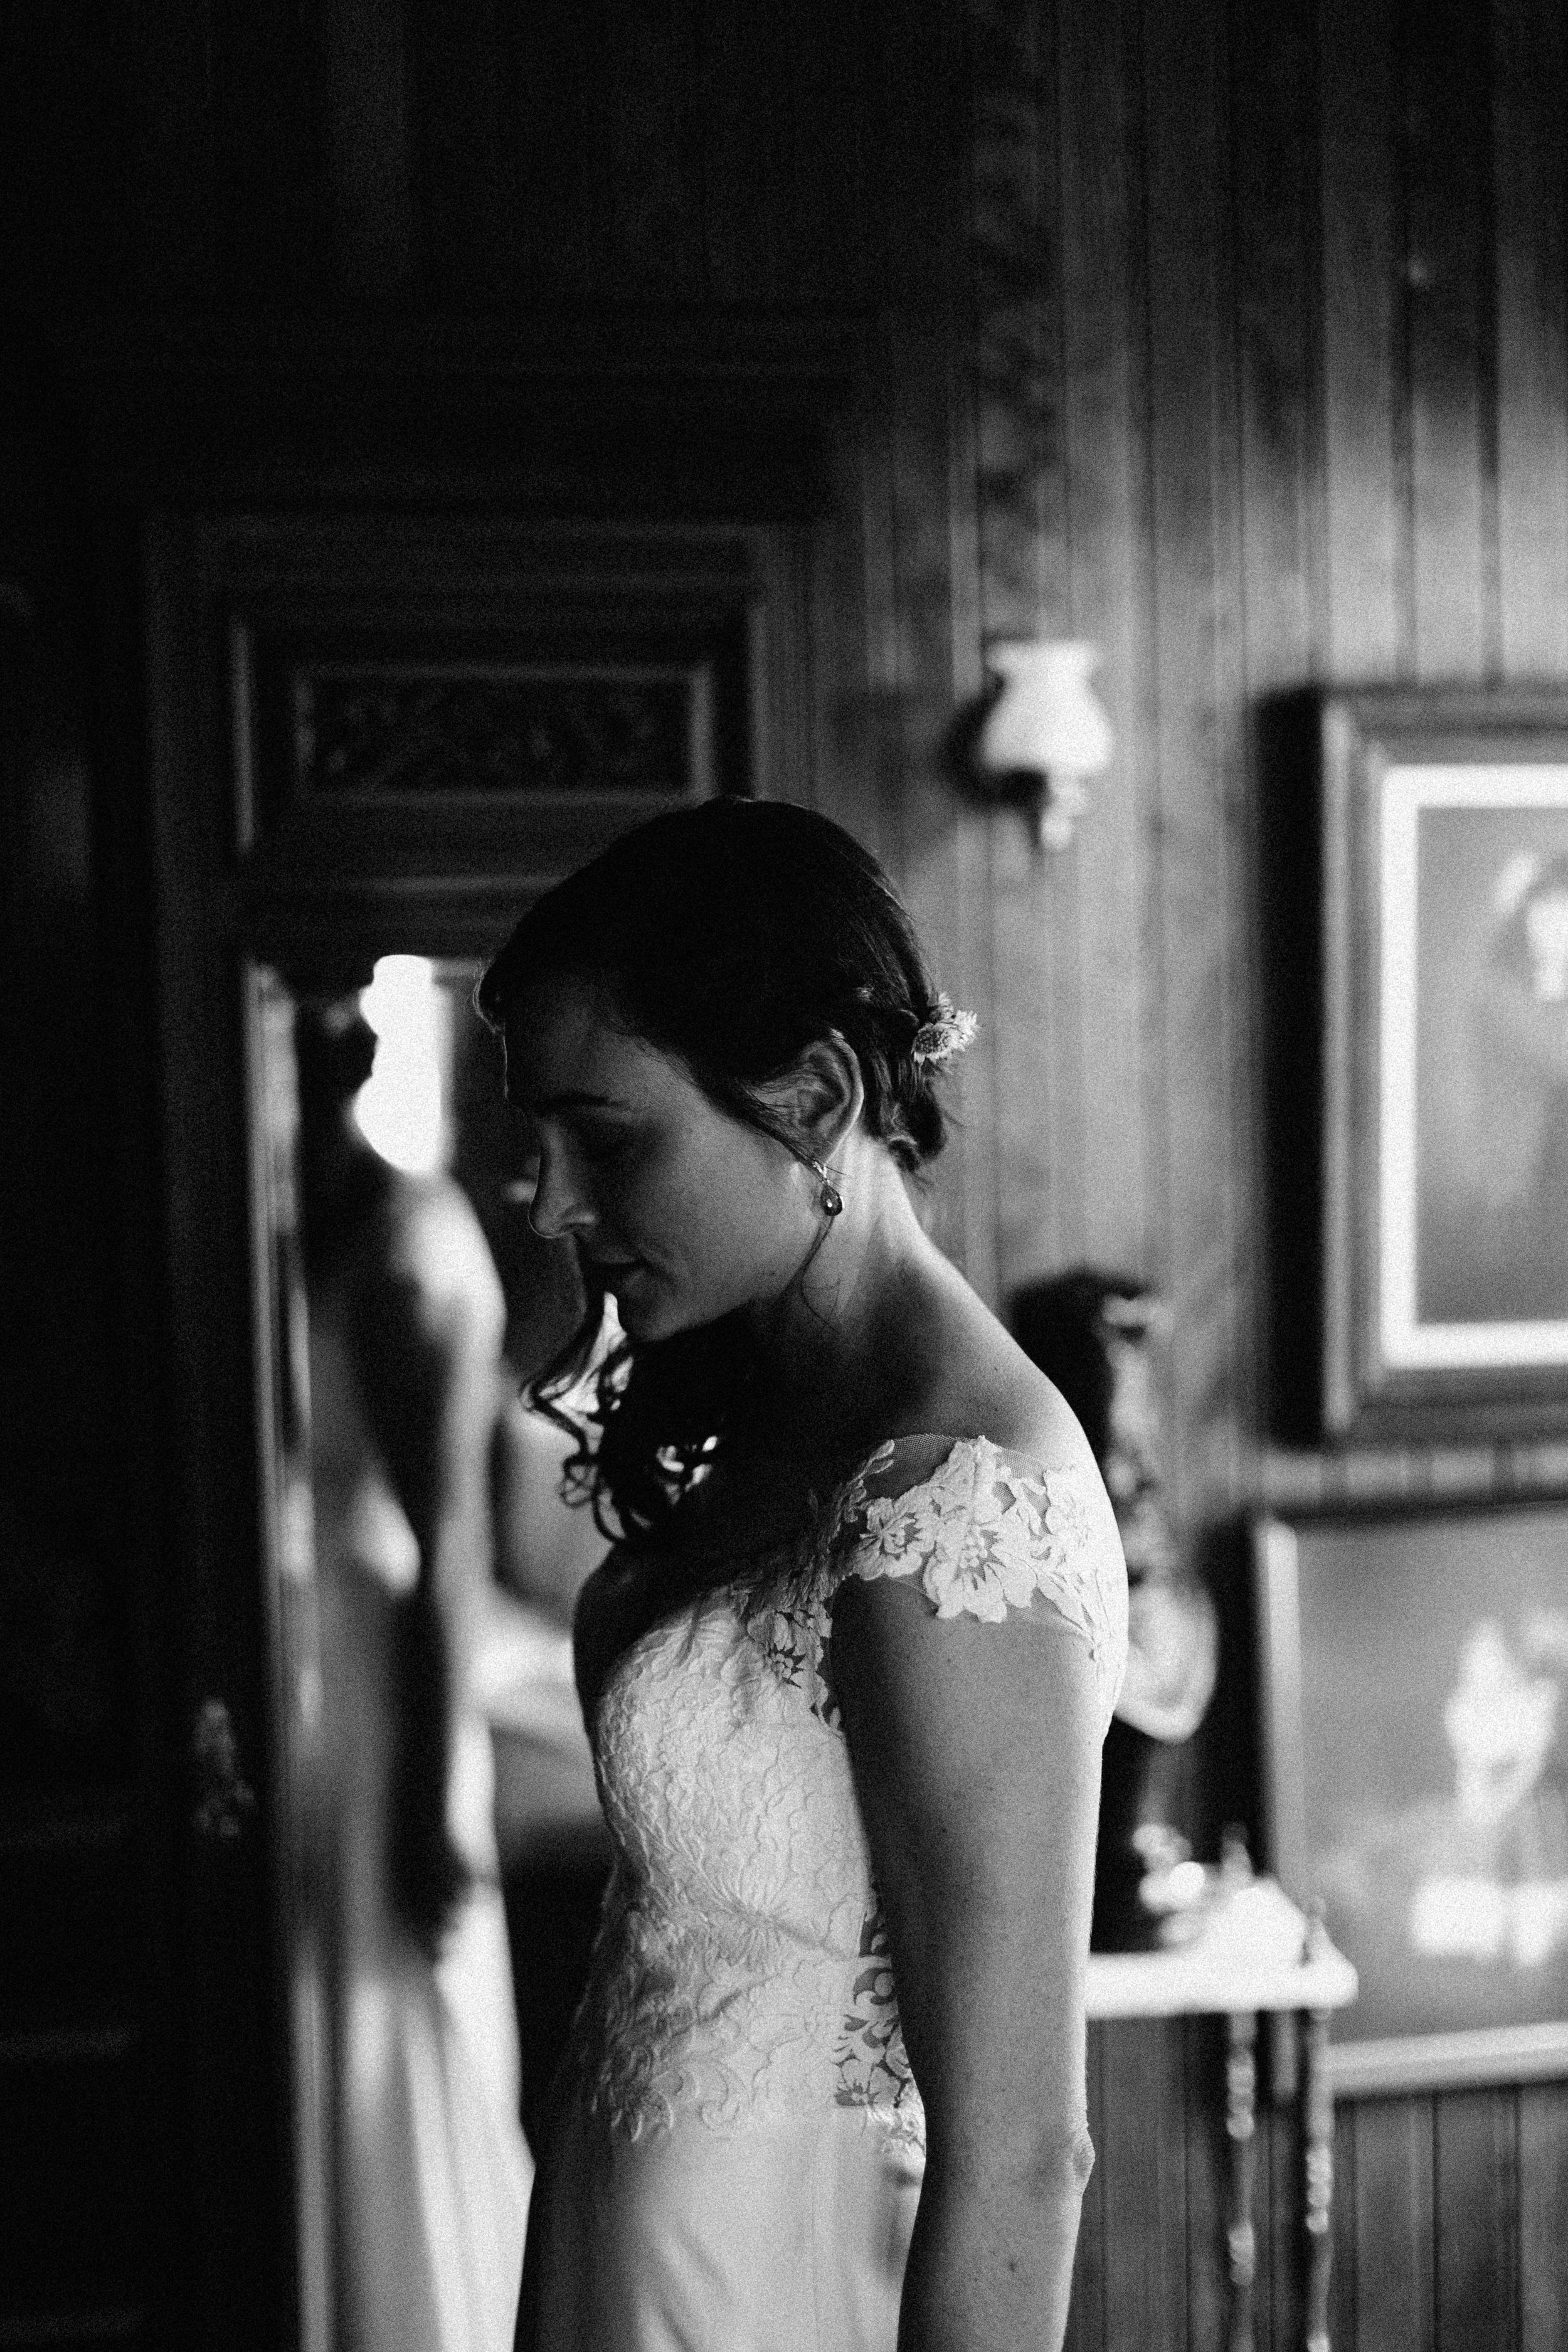 cleveland_georgia_mountain_laurel_farm_natural_classic_timeless_documentary_candid_wedding_emotional_photojournalism_river_west_1216.jpg